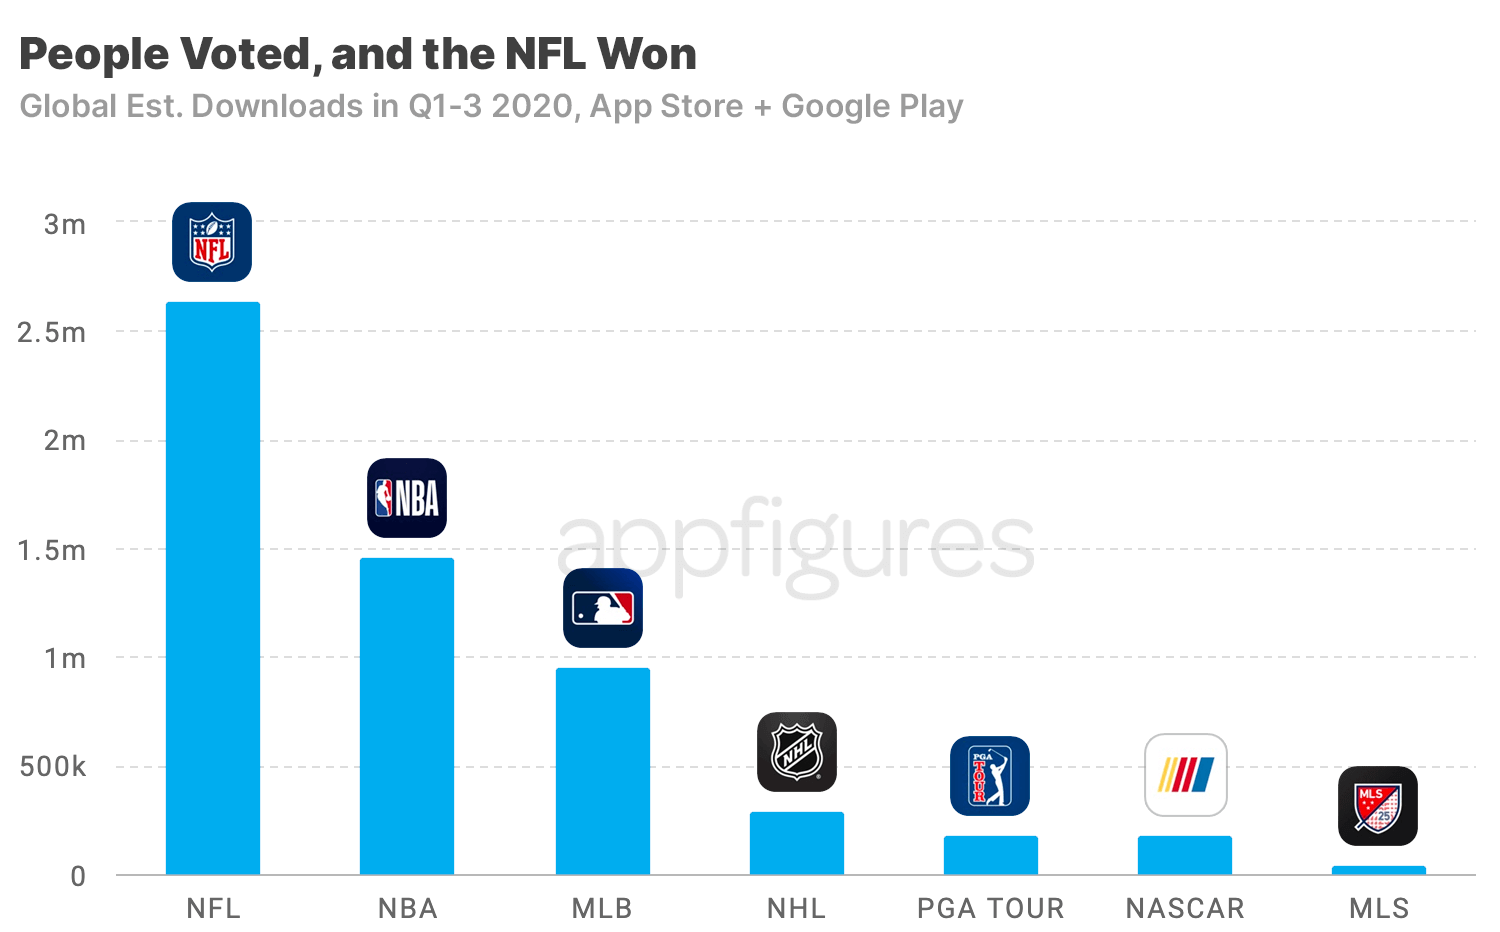 Downloads of Major sports apps in the App Store + Google Play